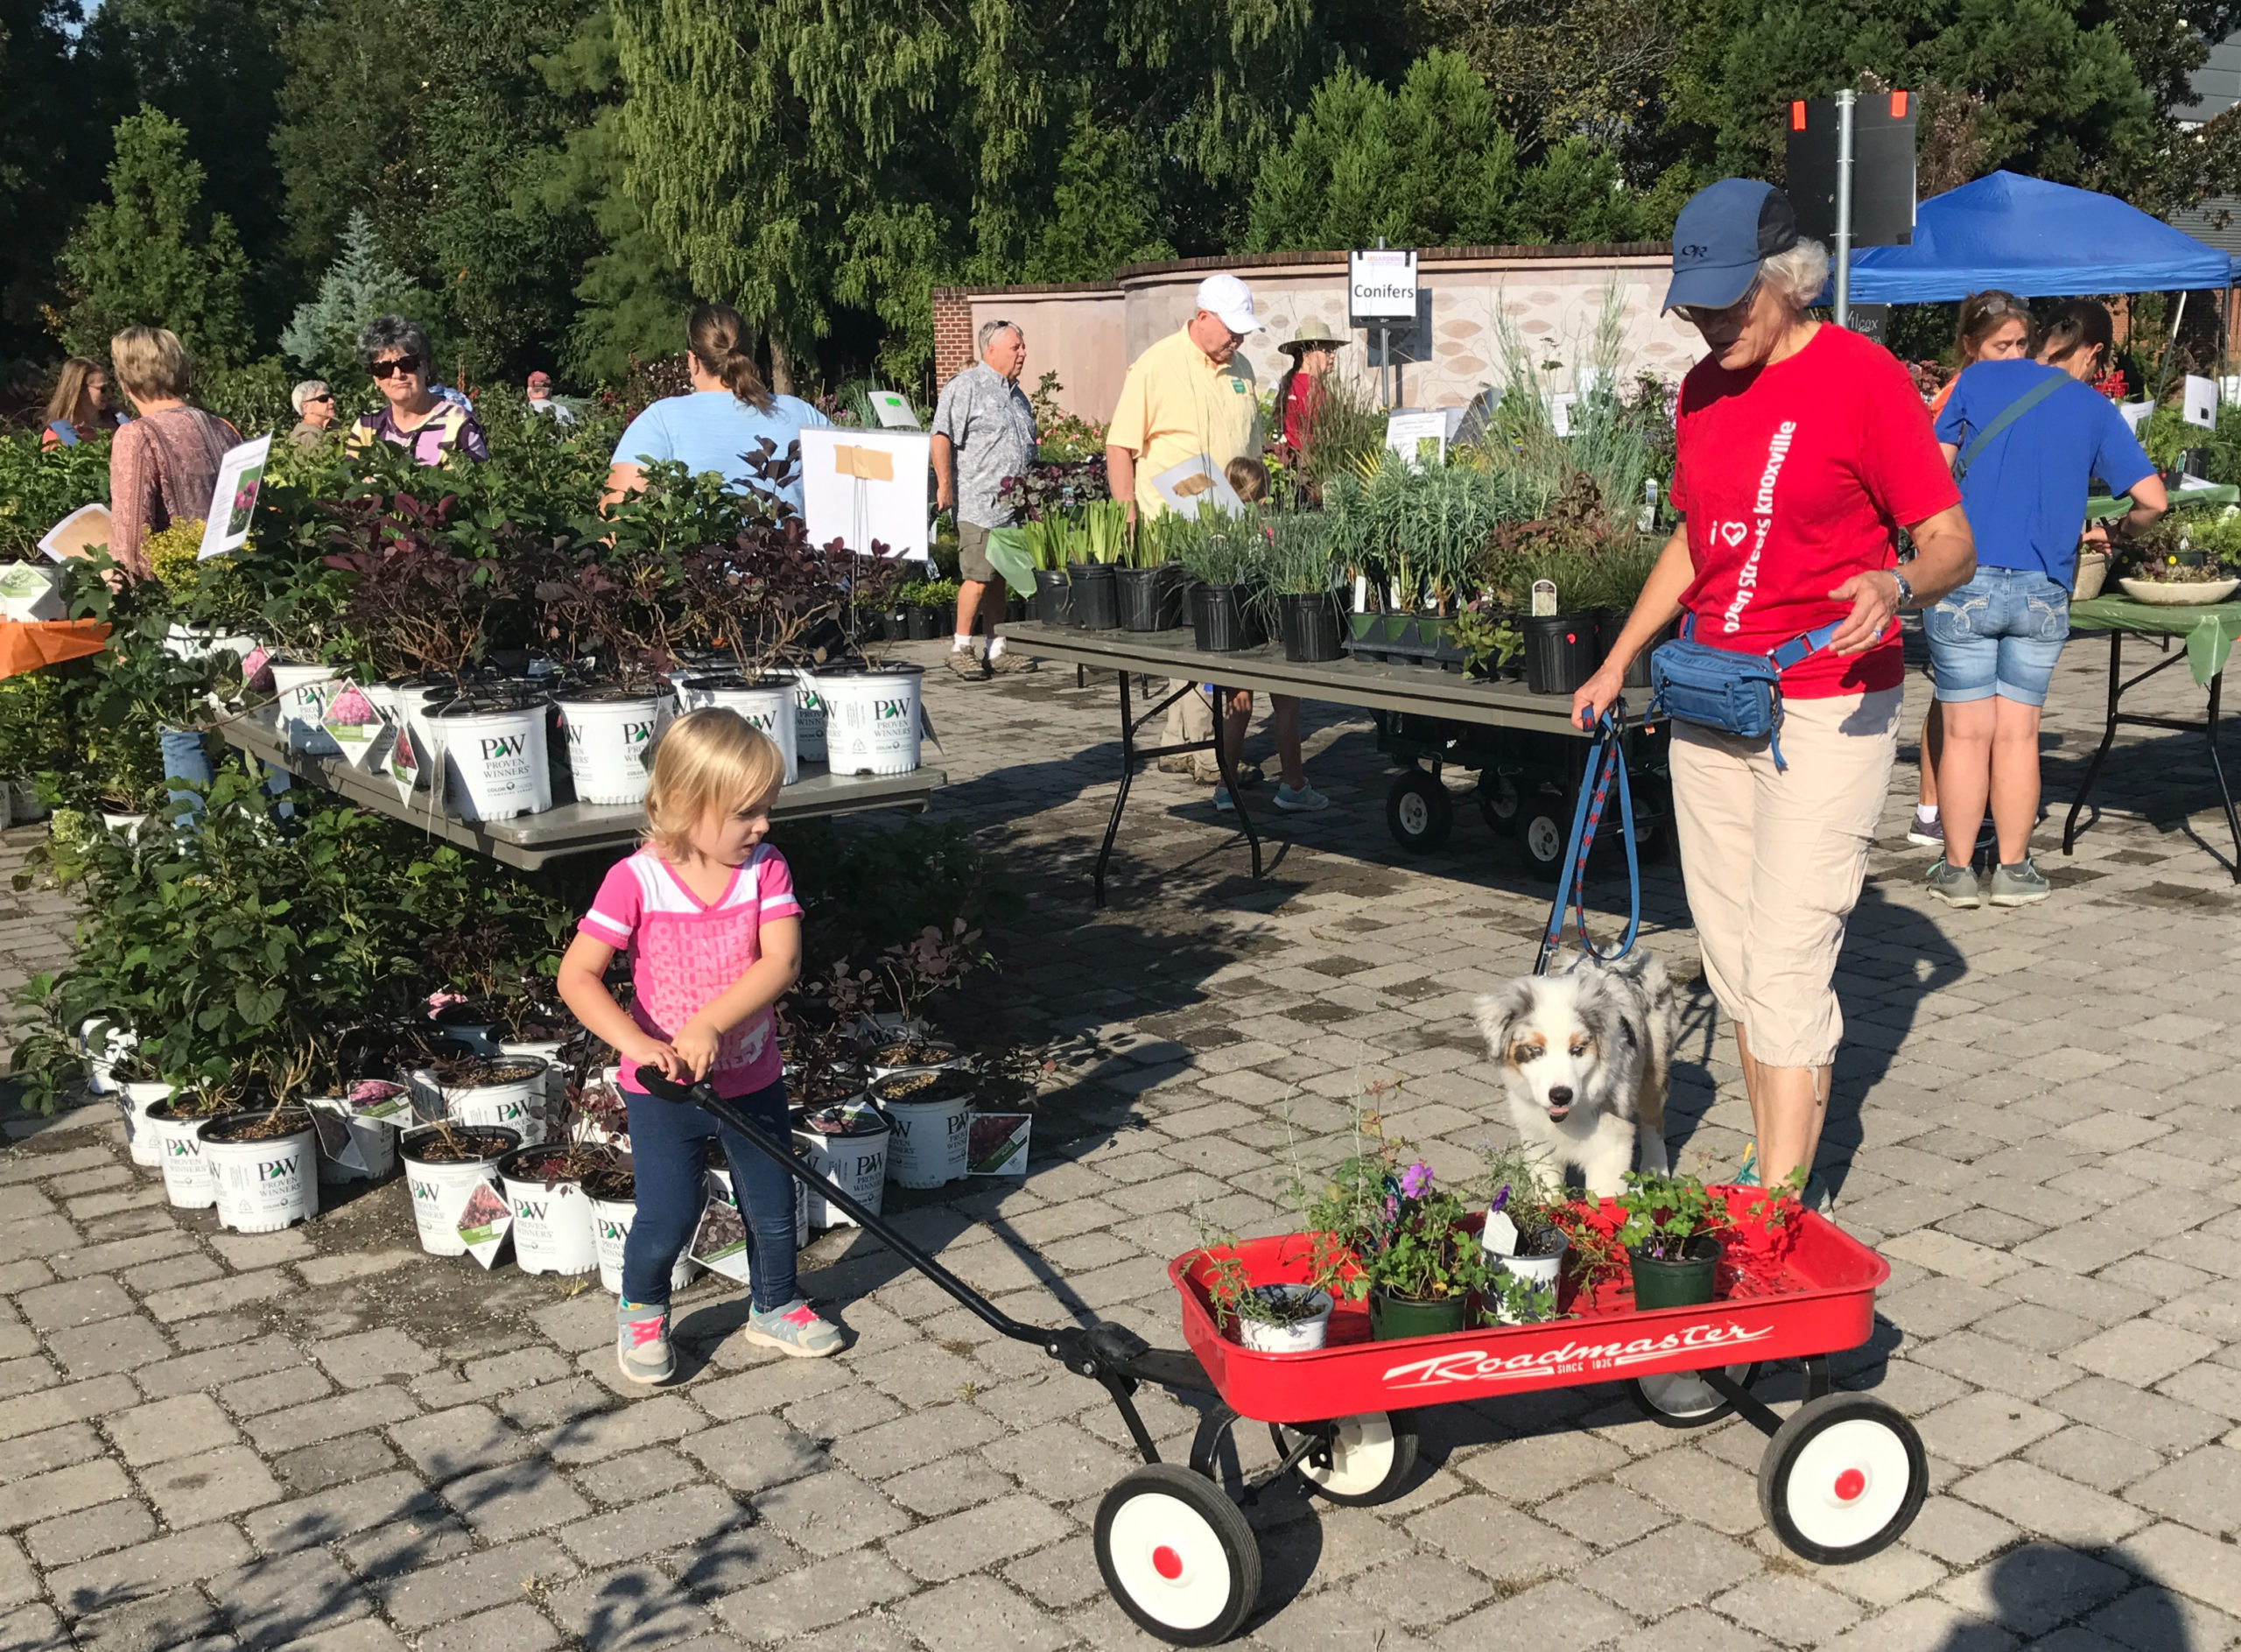 Image of plant sale attendees carrying plant purchases with a red wagon